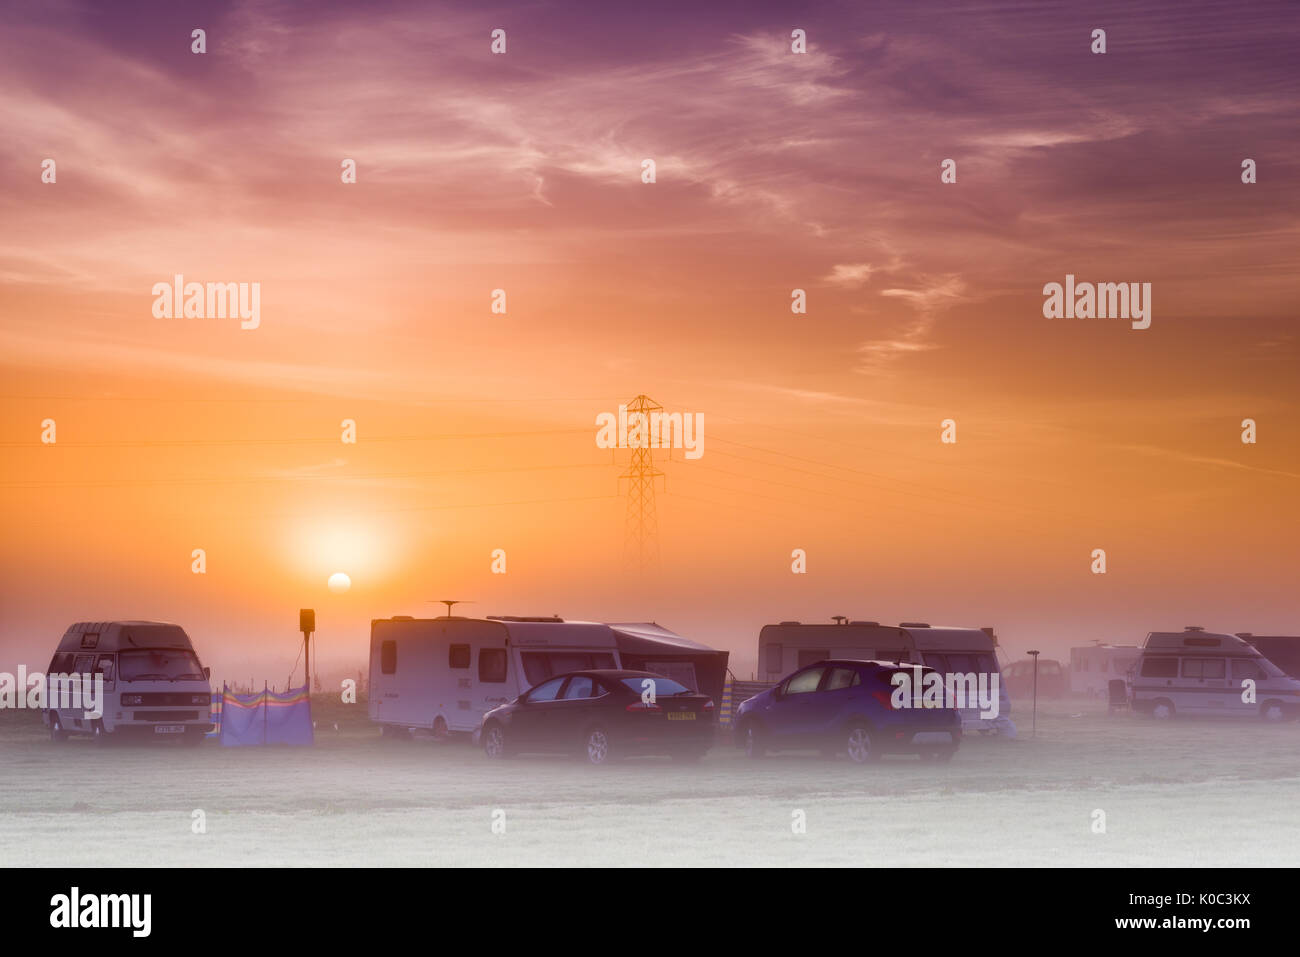 The sun rises over a misty campsite in the UK at dawn on an August morning. - Stock Image